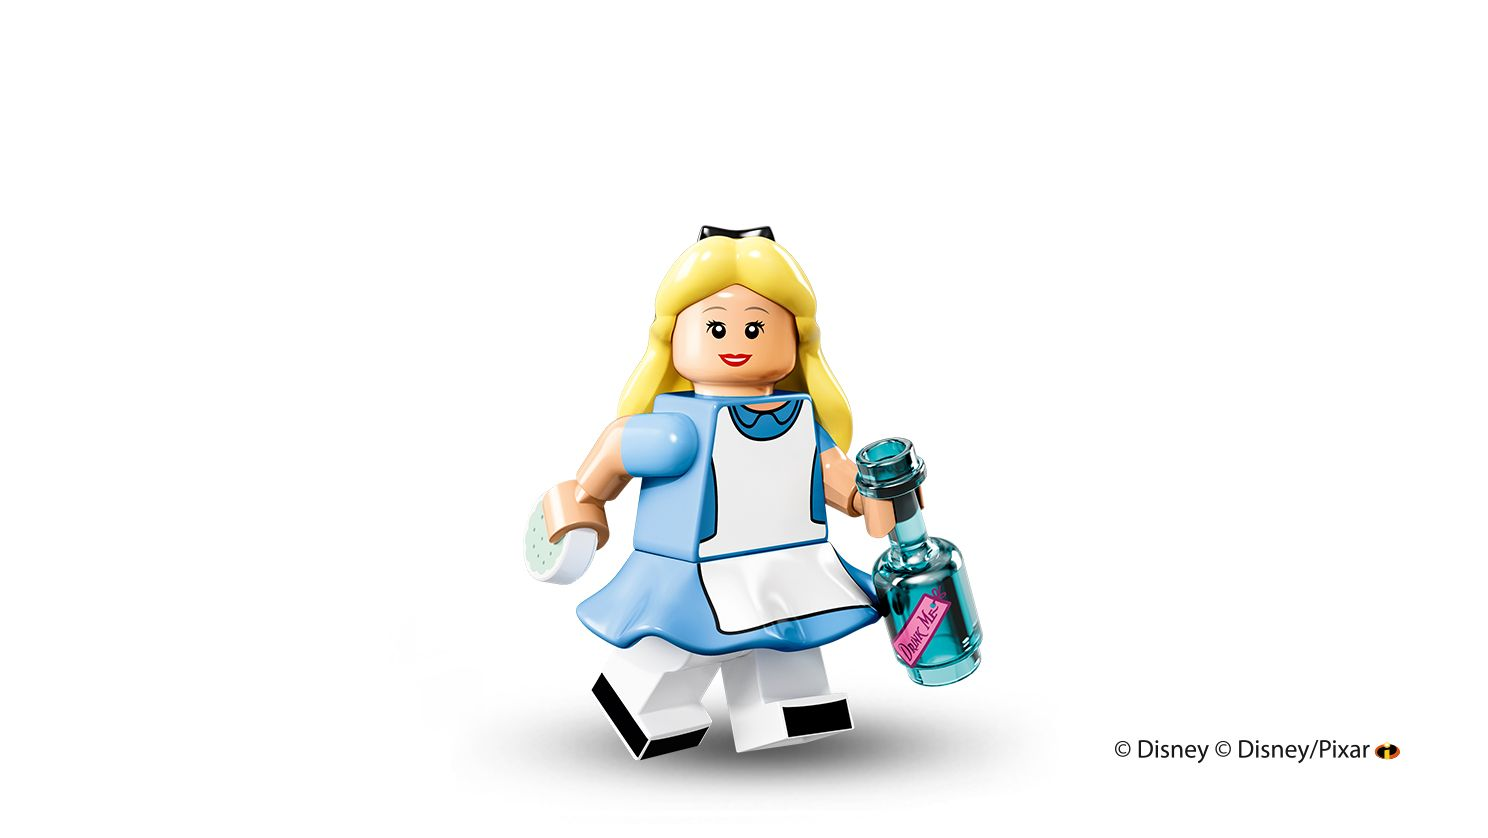 LEGO Disney Minifigures Images Revealed | Collider